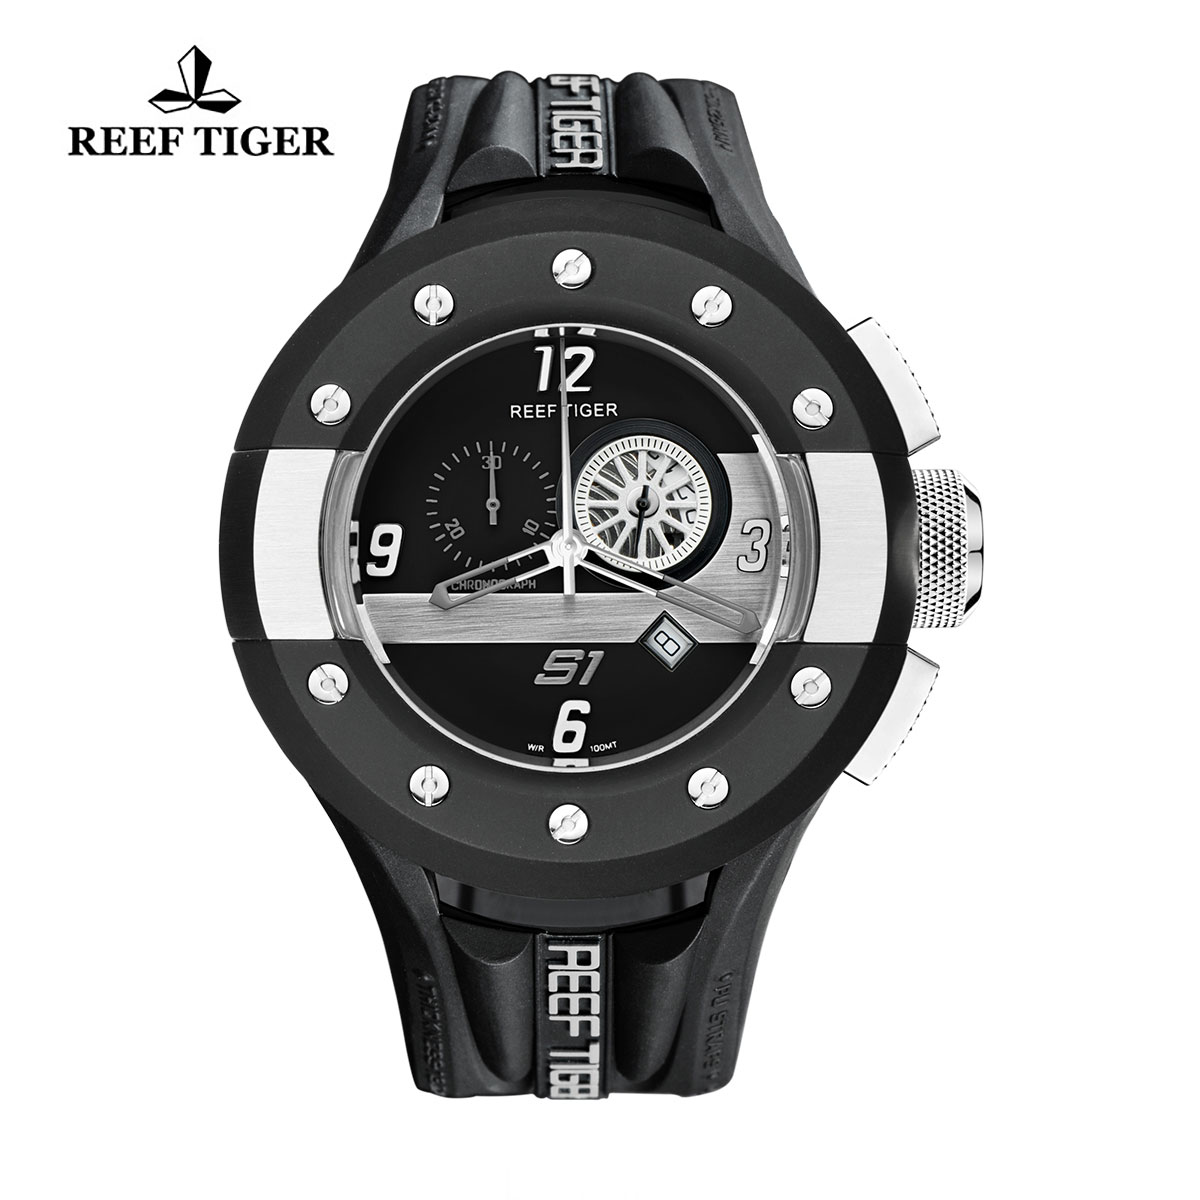 Reef Tiger Rally S1 Casual Watch Stainless Steel Rubber Strap Dashboard Dial Quartz Watch RGA3027-BBBW